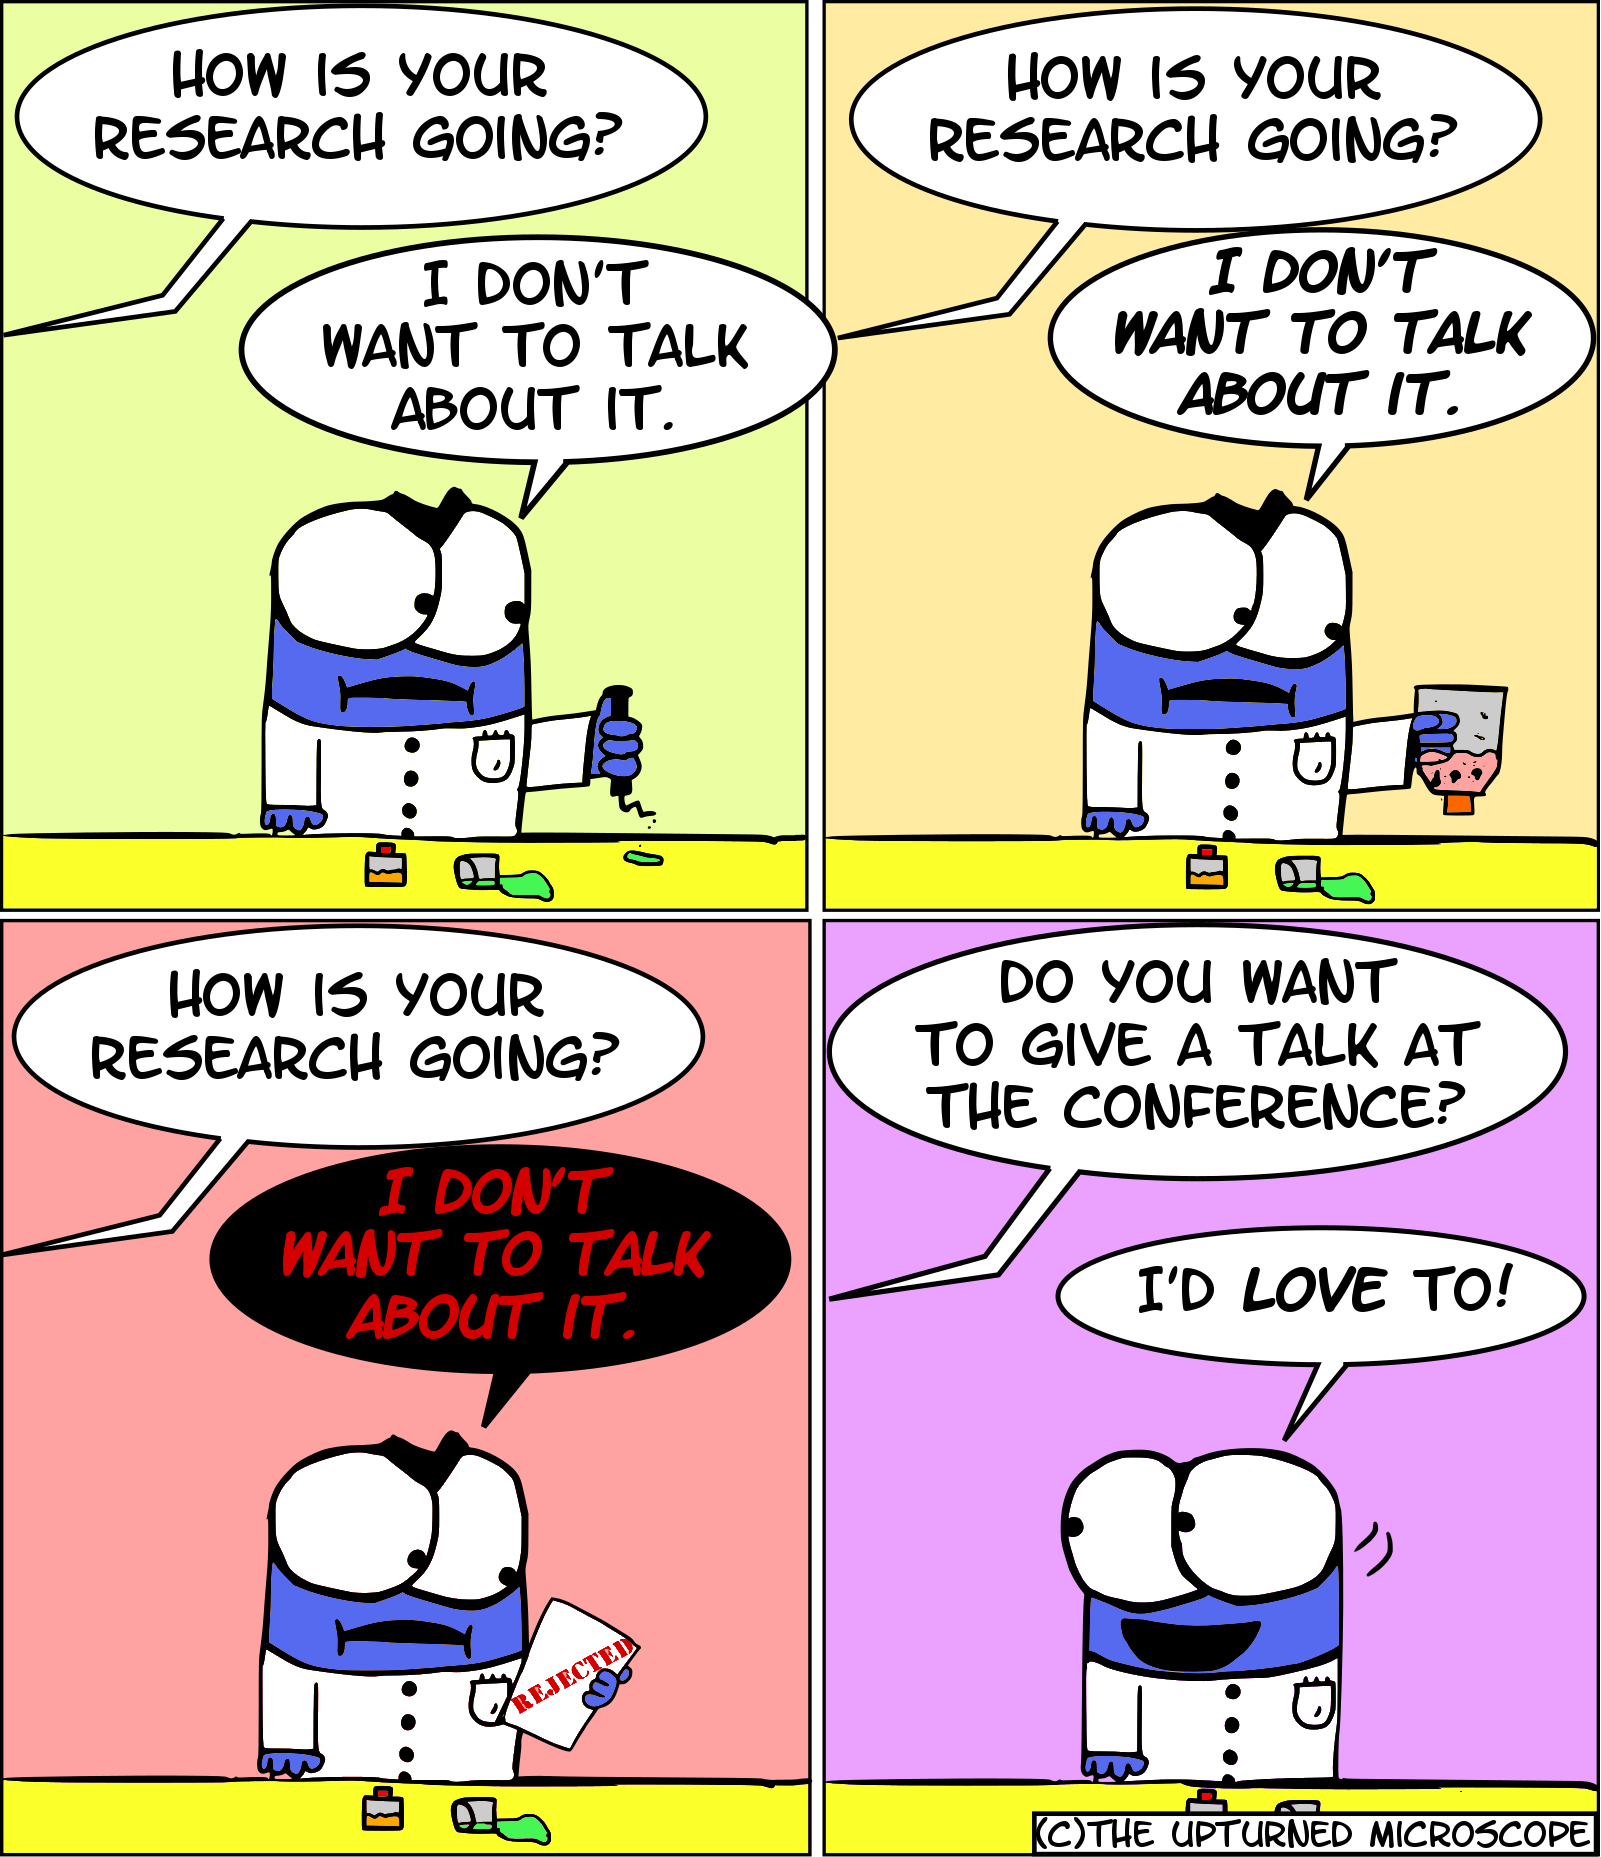 Follow The Upturned Microscope on Twitter and Facebook ...